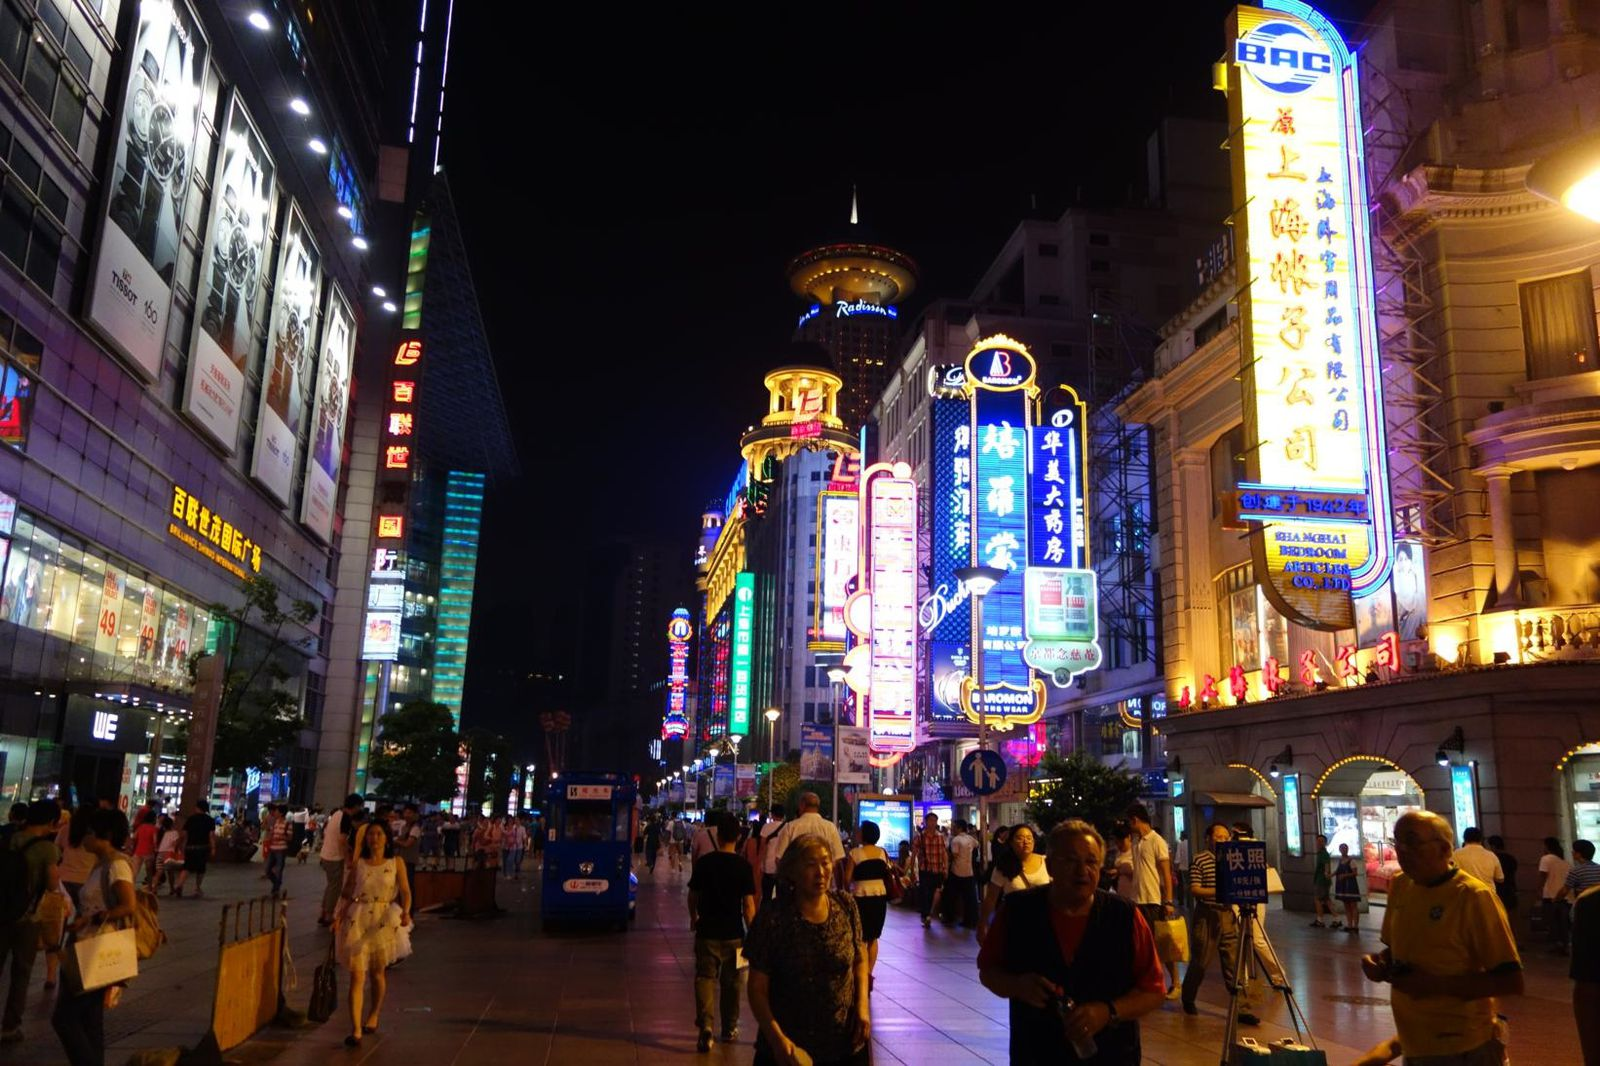 Nanjing West Road, THE rue touristique.